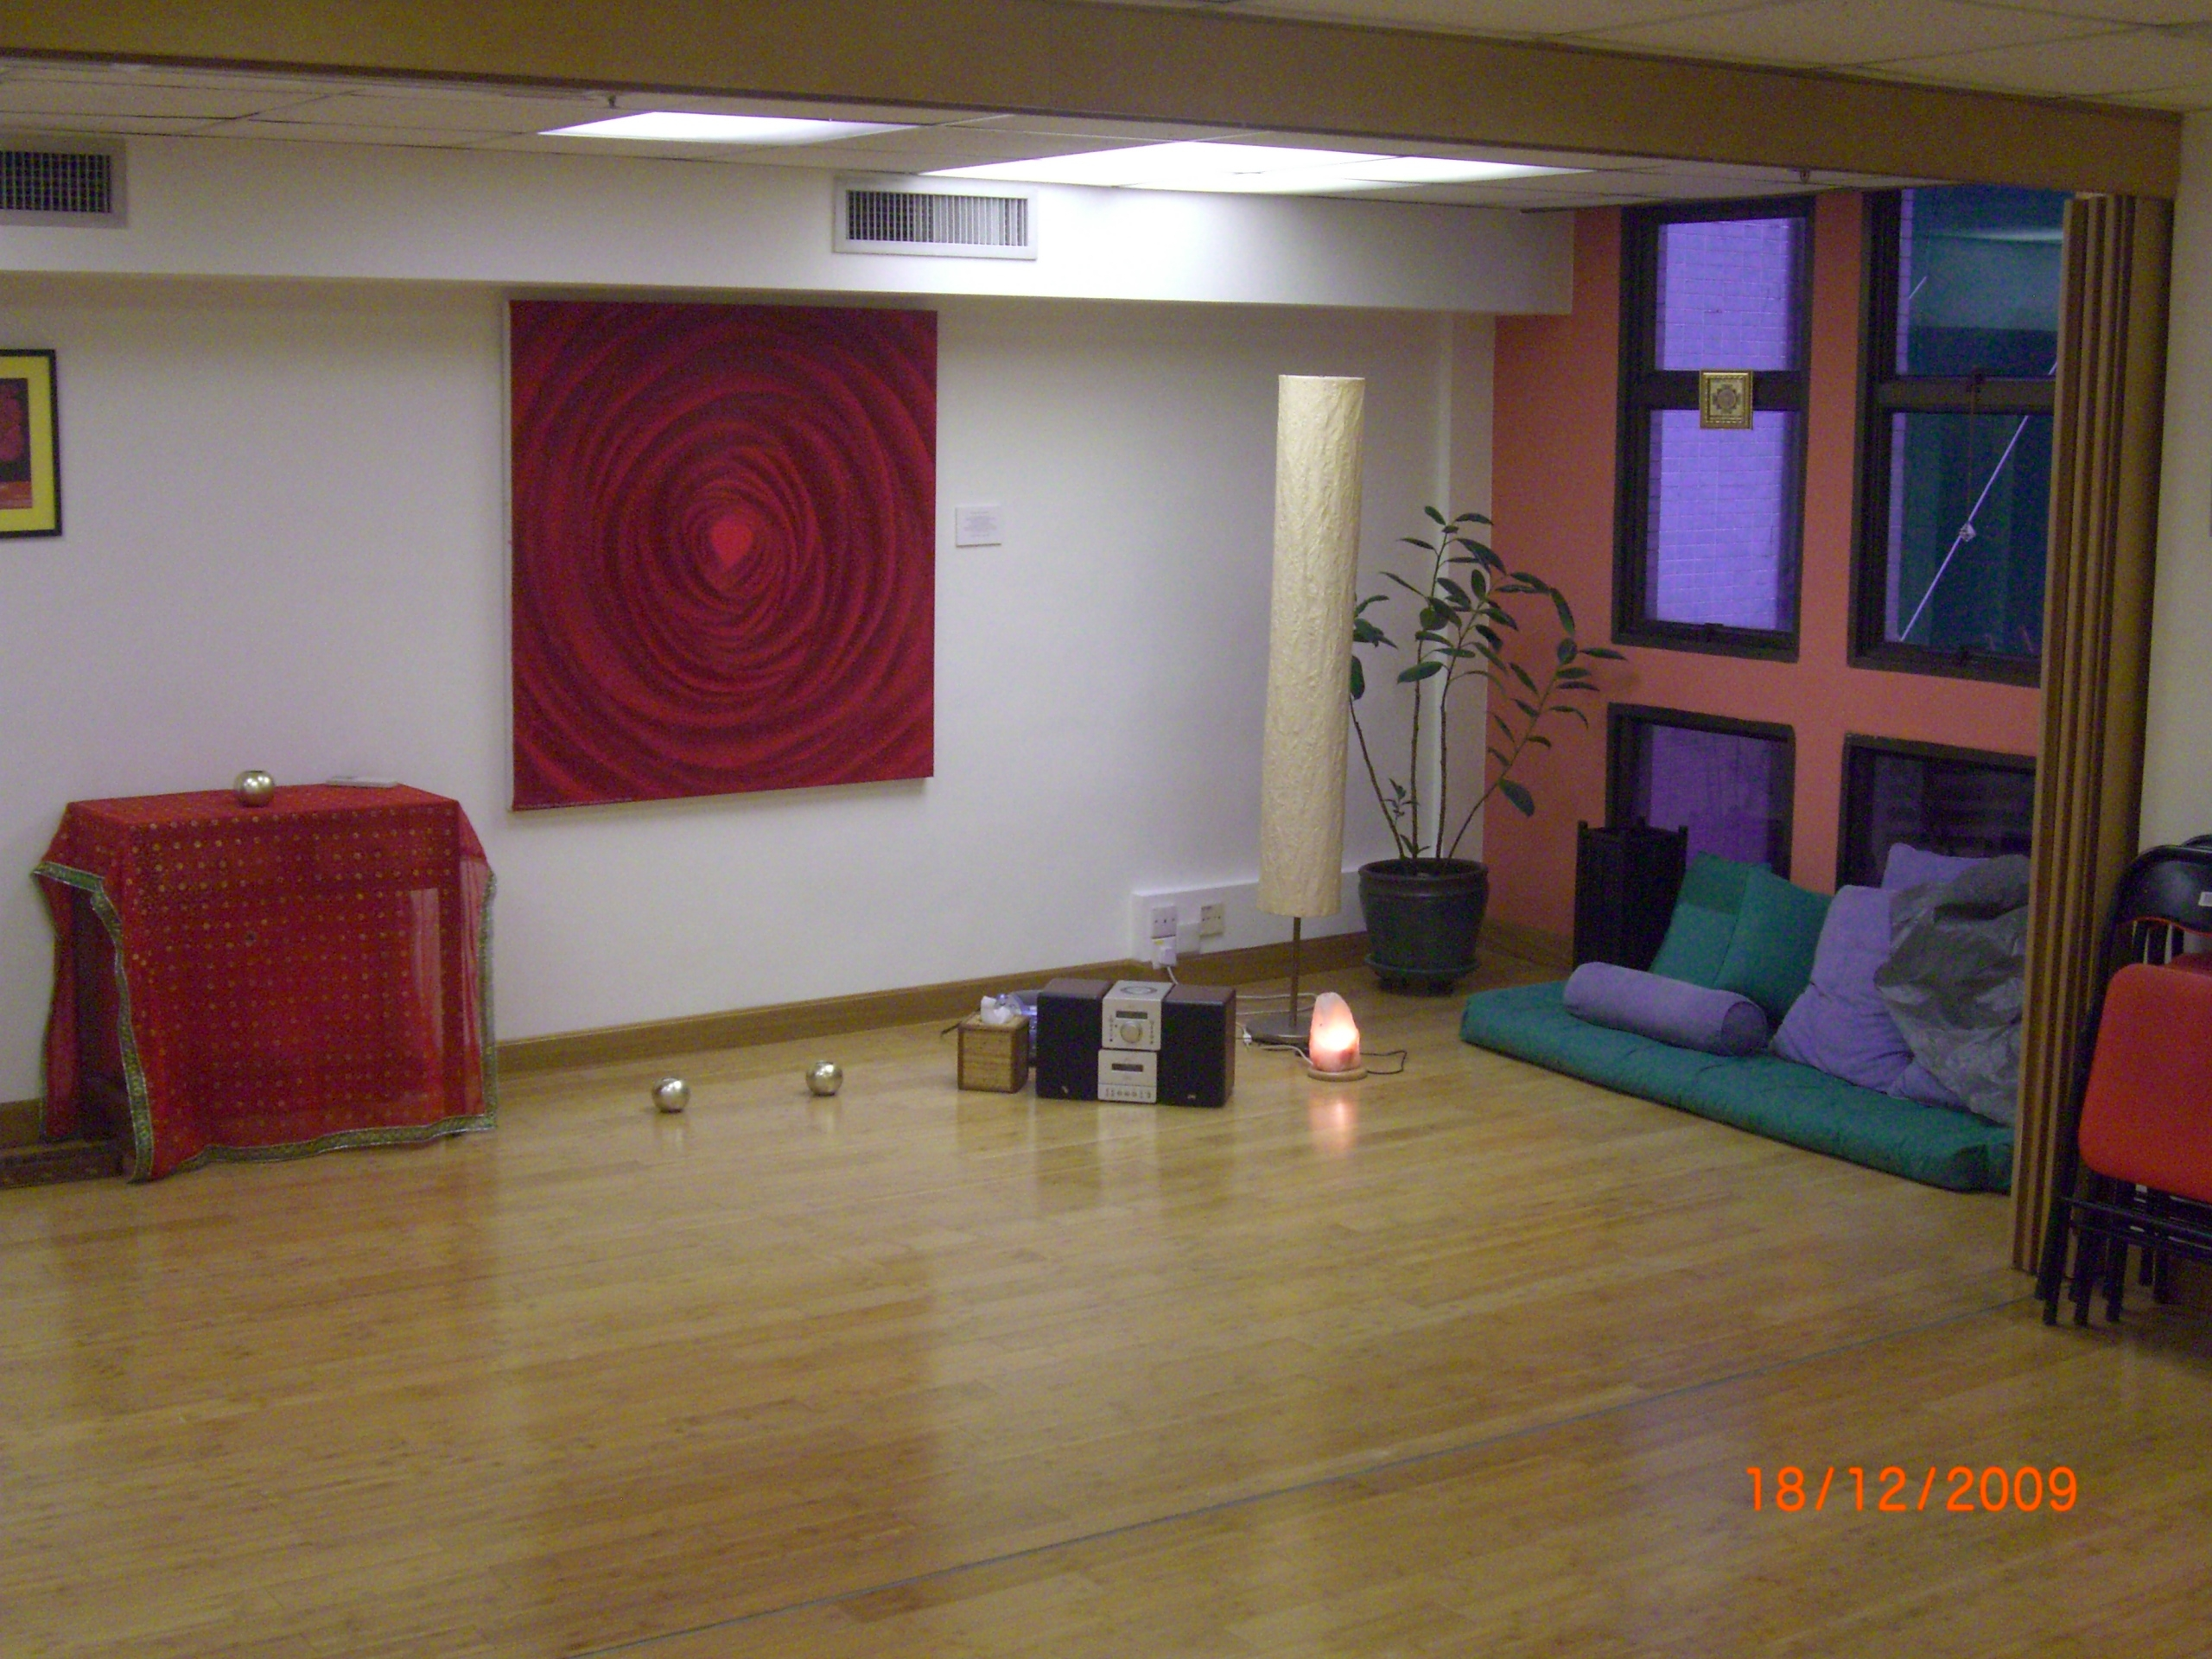 commercial renovation Shakti healing circle after4PG